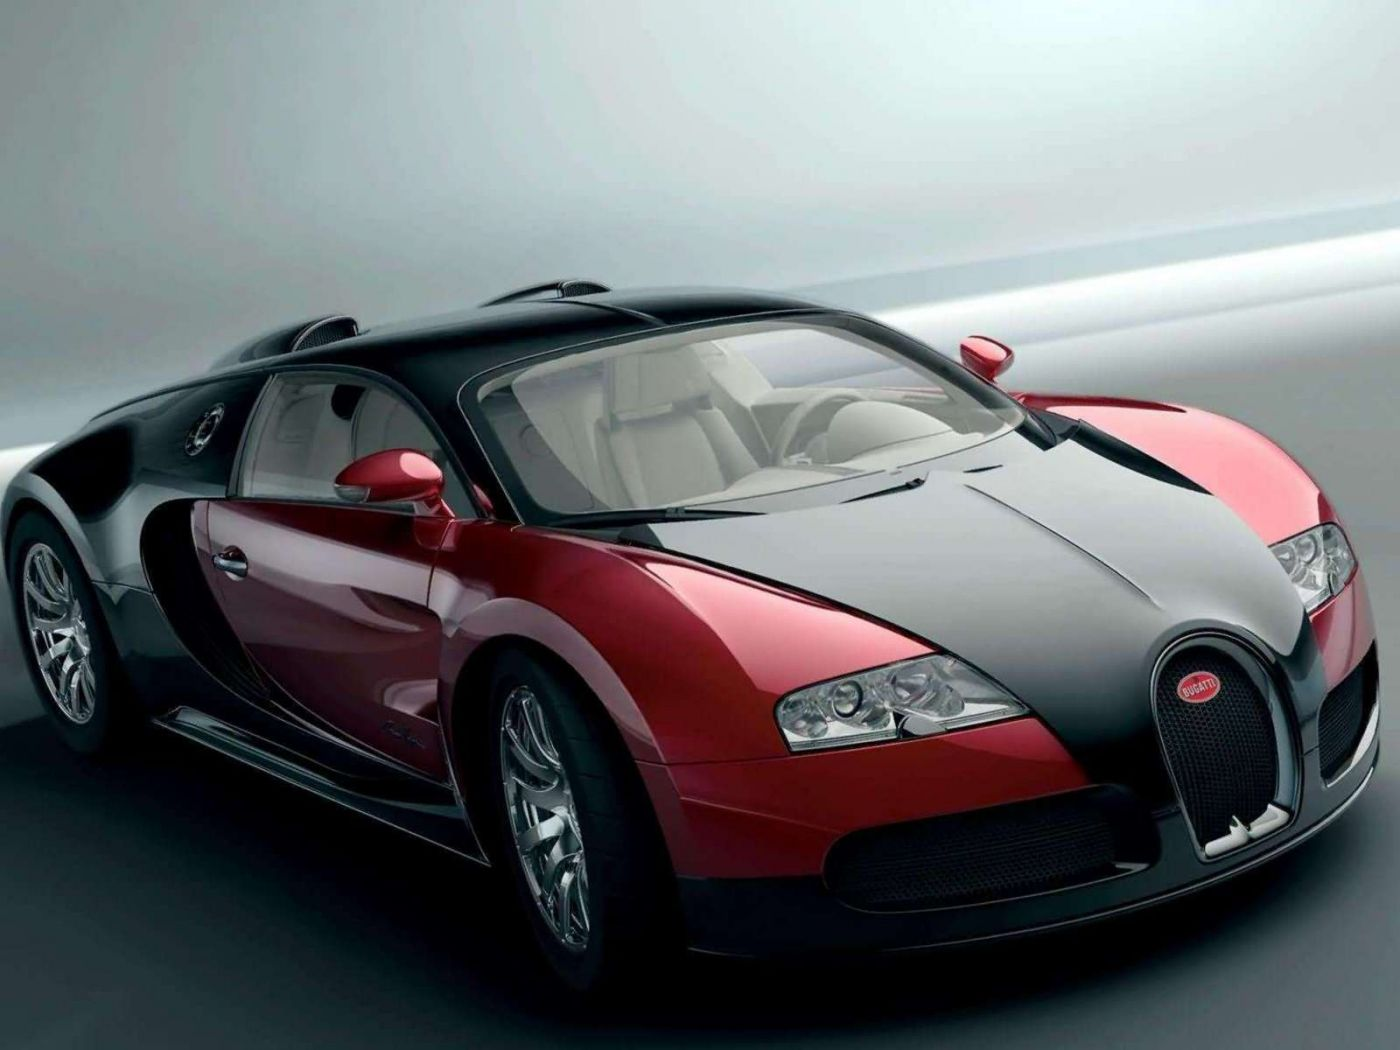 Bugatti Veyron Wallpaper   Supercars Hd Wallpaper 1400x1050